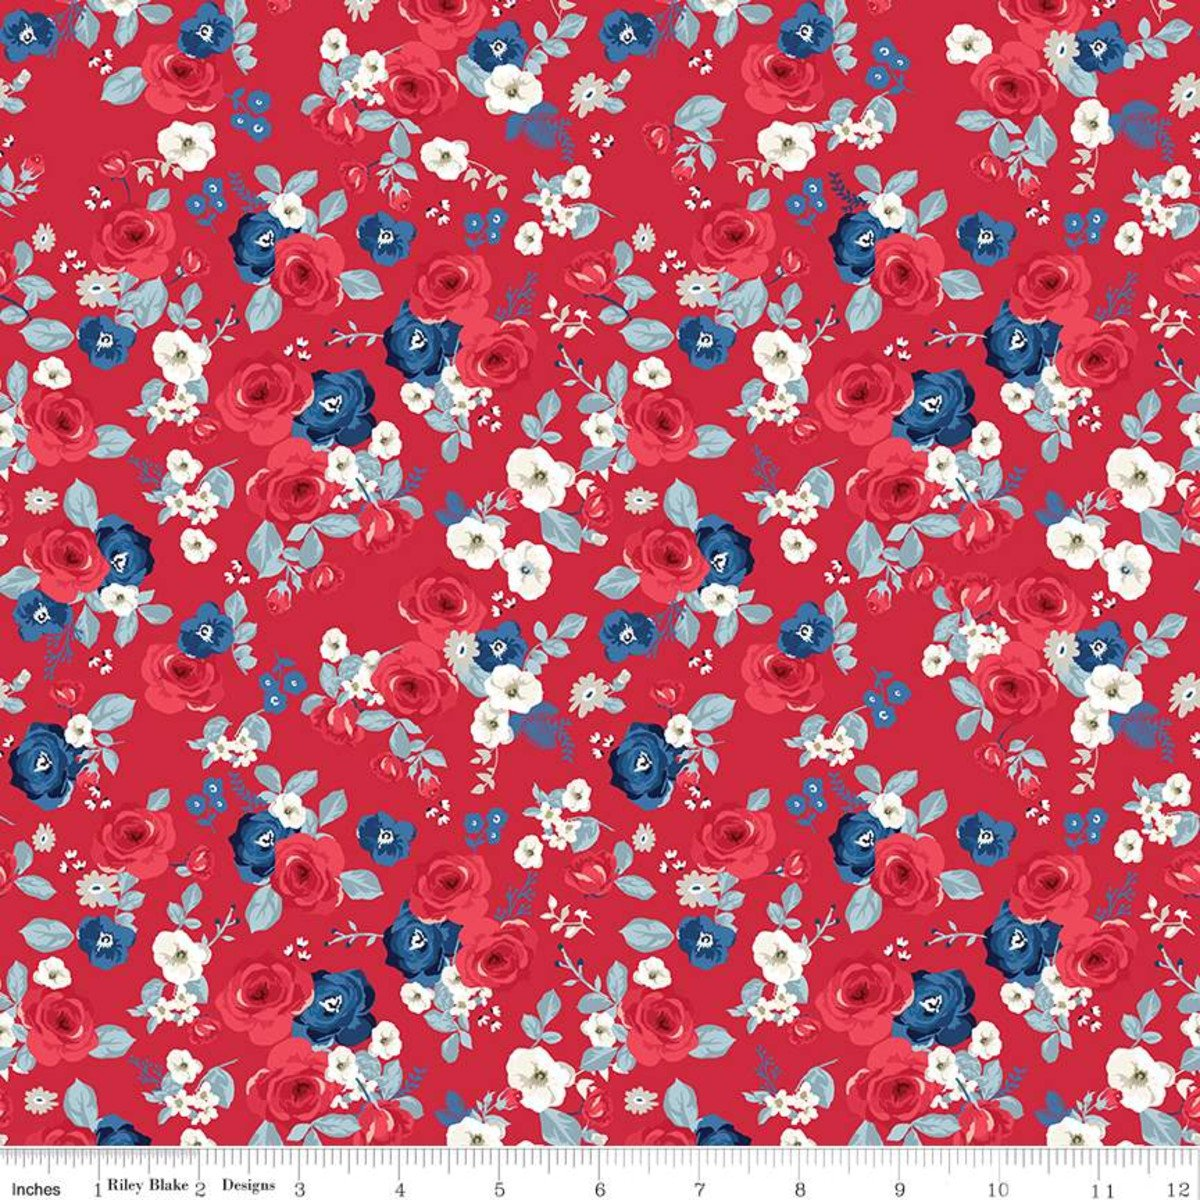 Land of Liberty C10561 Calico Red